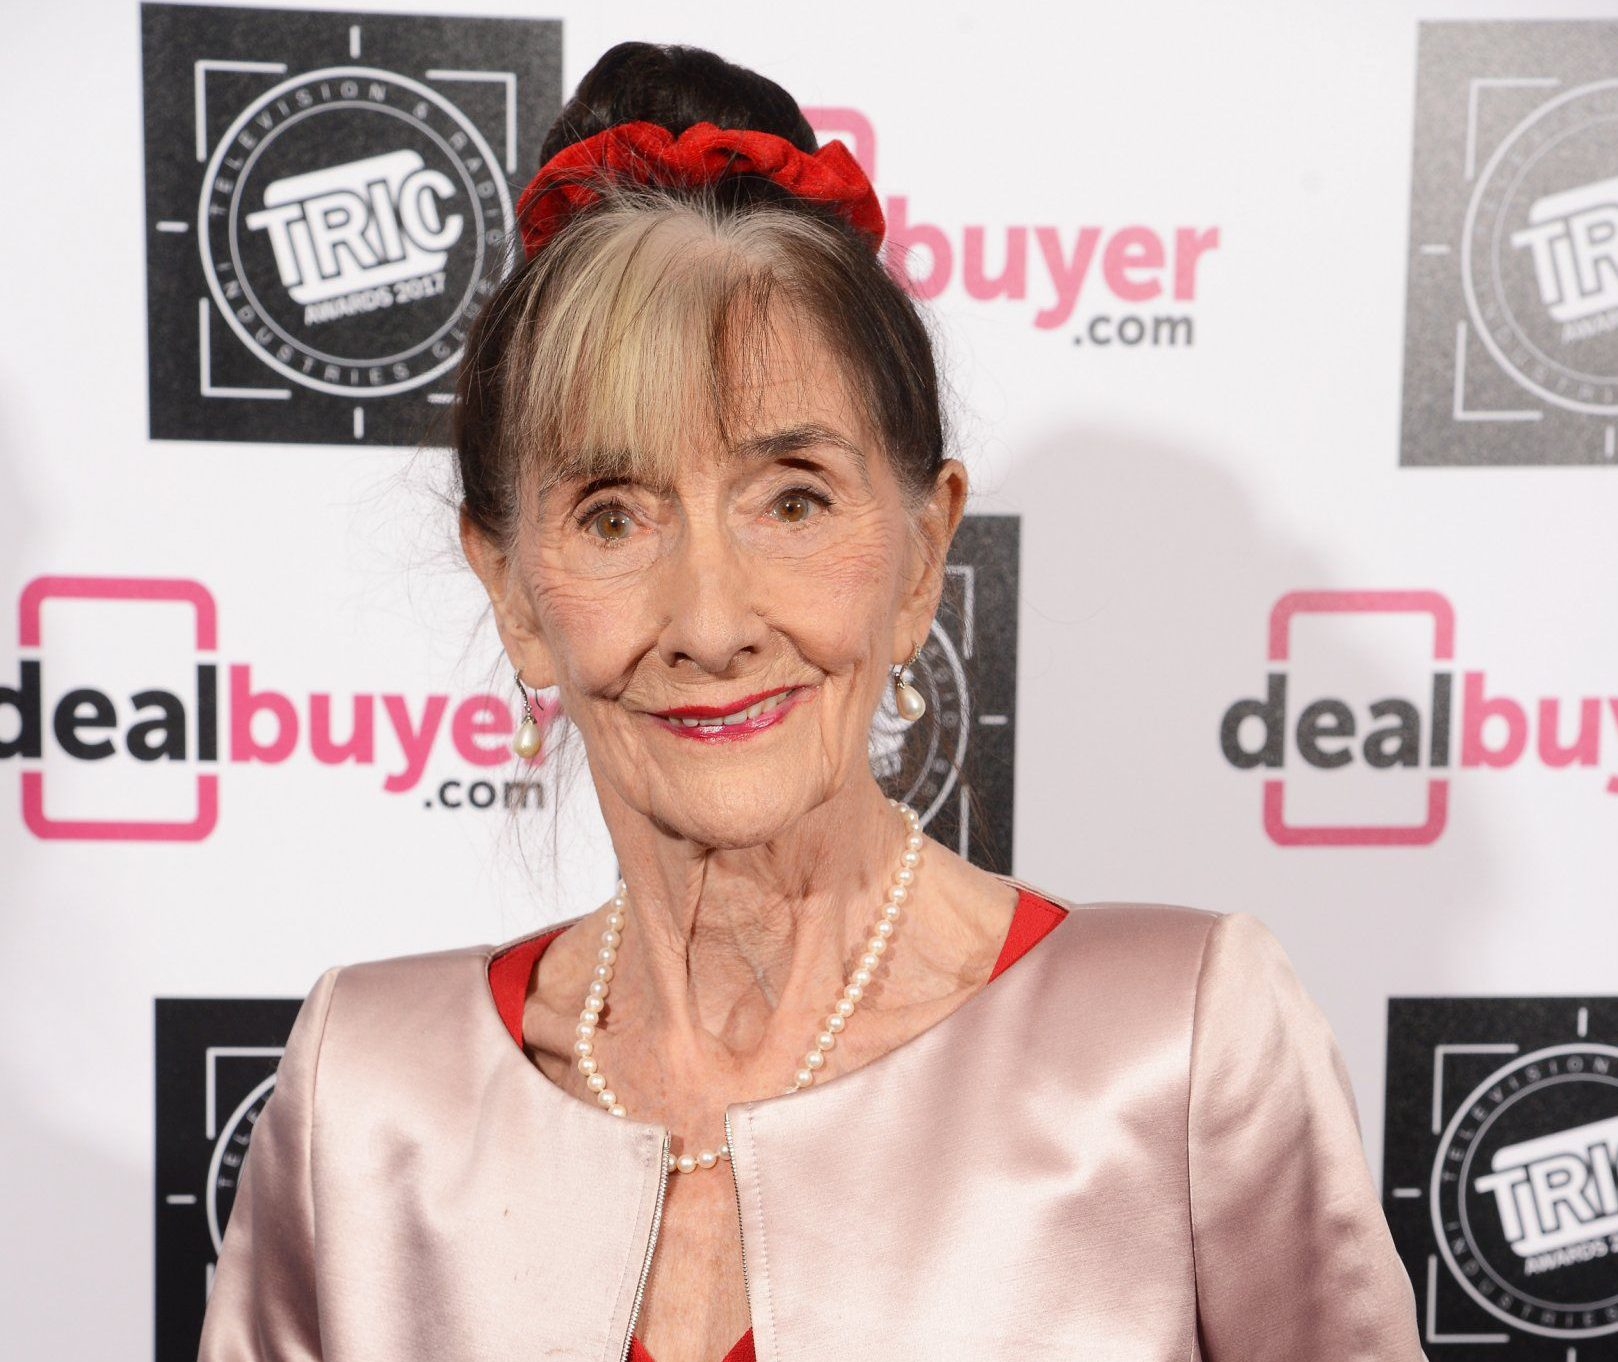 LONDON, ENGLAND - MARCH 14: June Brown attends the TRIC Awards 2017 at The Grosvenor House Hotel on March 14, 2017 in London, England. (Photo by Dave J Hogan/Getty Images)